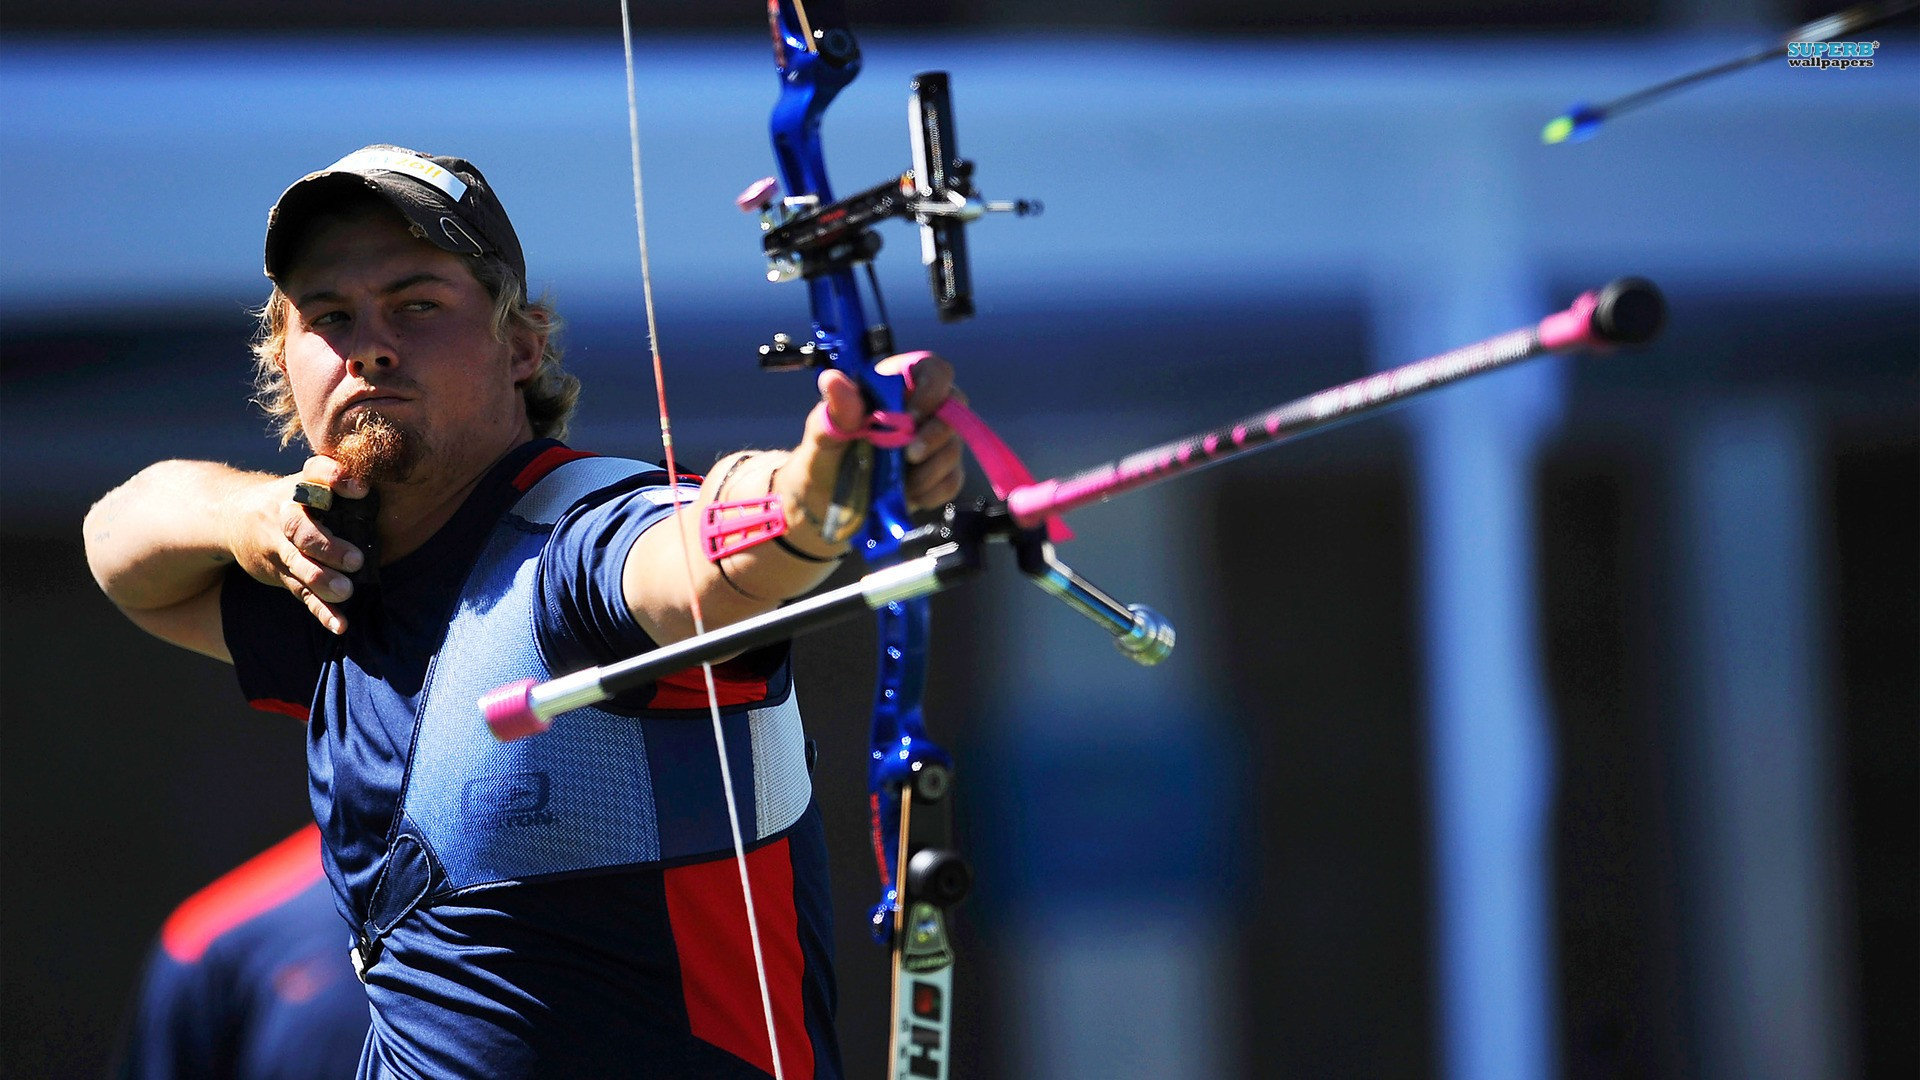 Archery Best Hd Wallpapers Backgrounds All Hd Wallpapers HD Wallpapers Download Free Images Wallpaper [1000image.com]